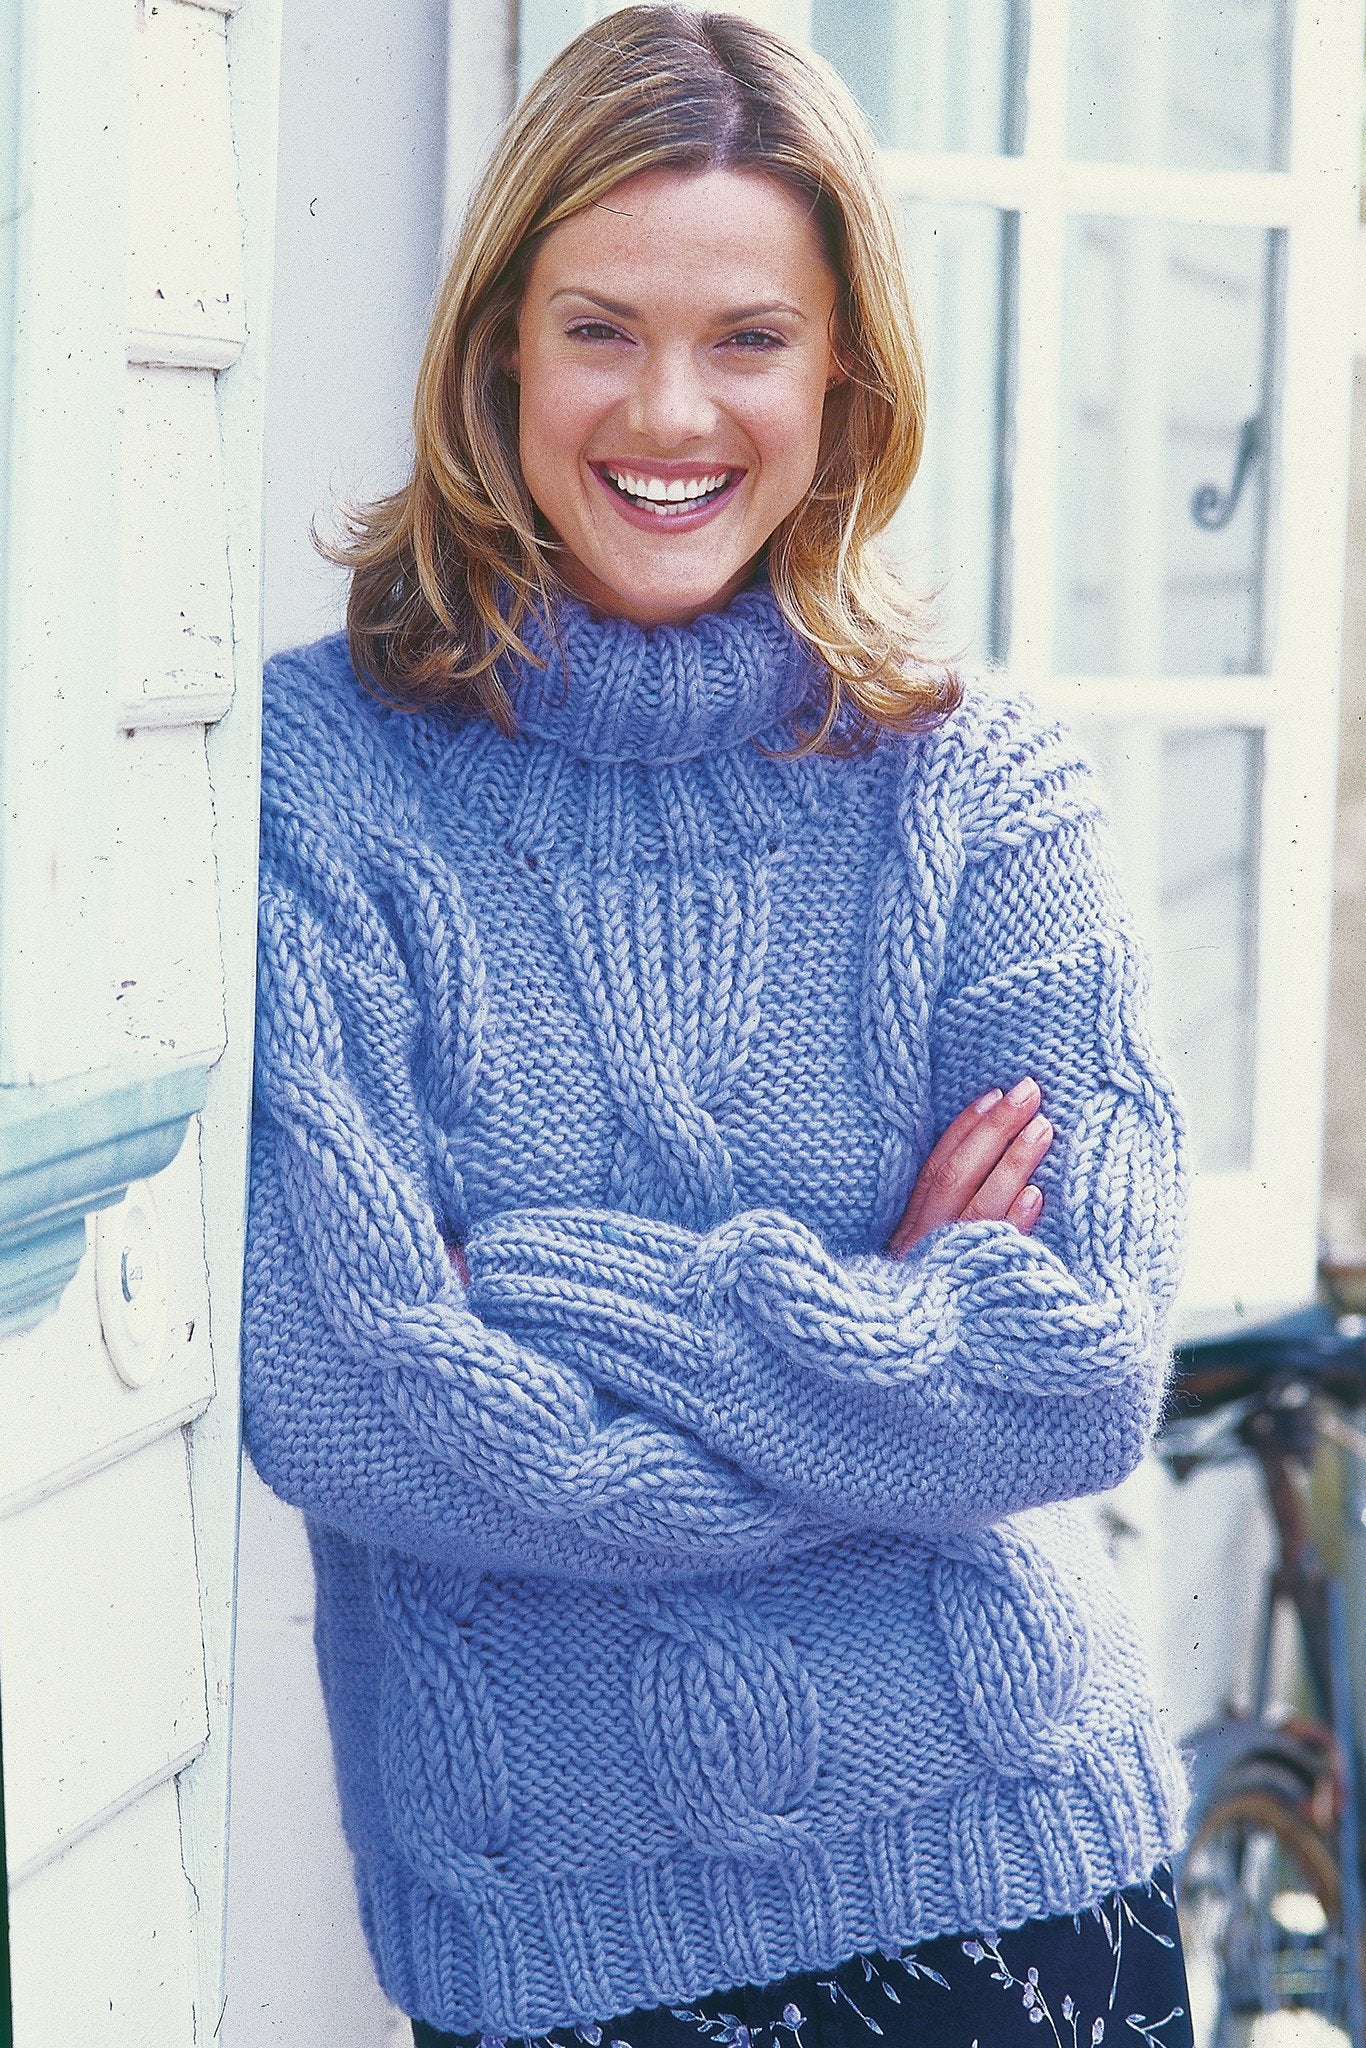 Womens Cable Roll Neck Jumper Knitting Pattern – The Knitting Network